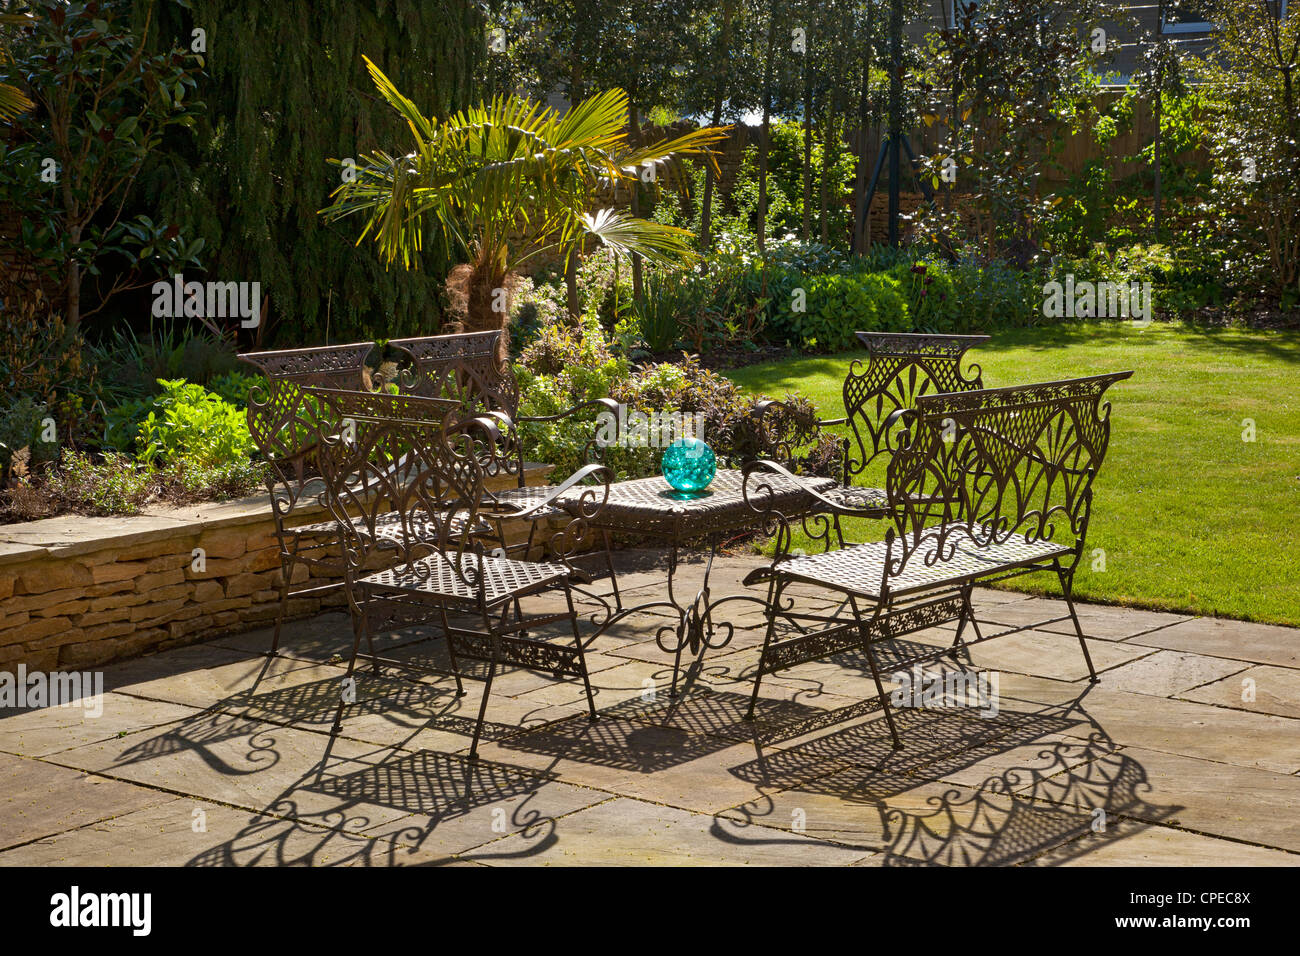 French style metal table and chairs furniture on stone patio in summer garden - Stock Image